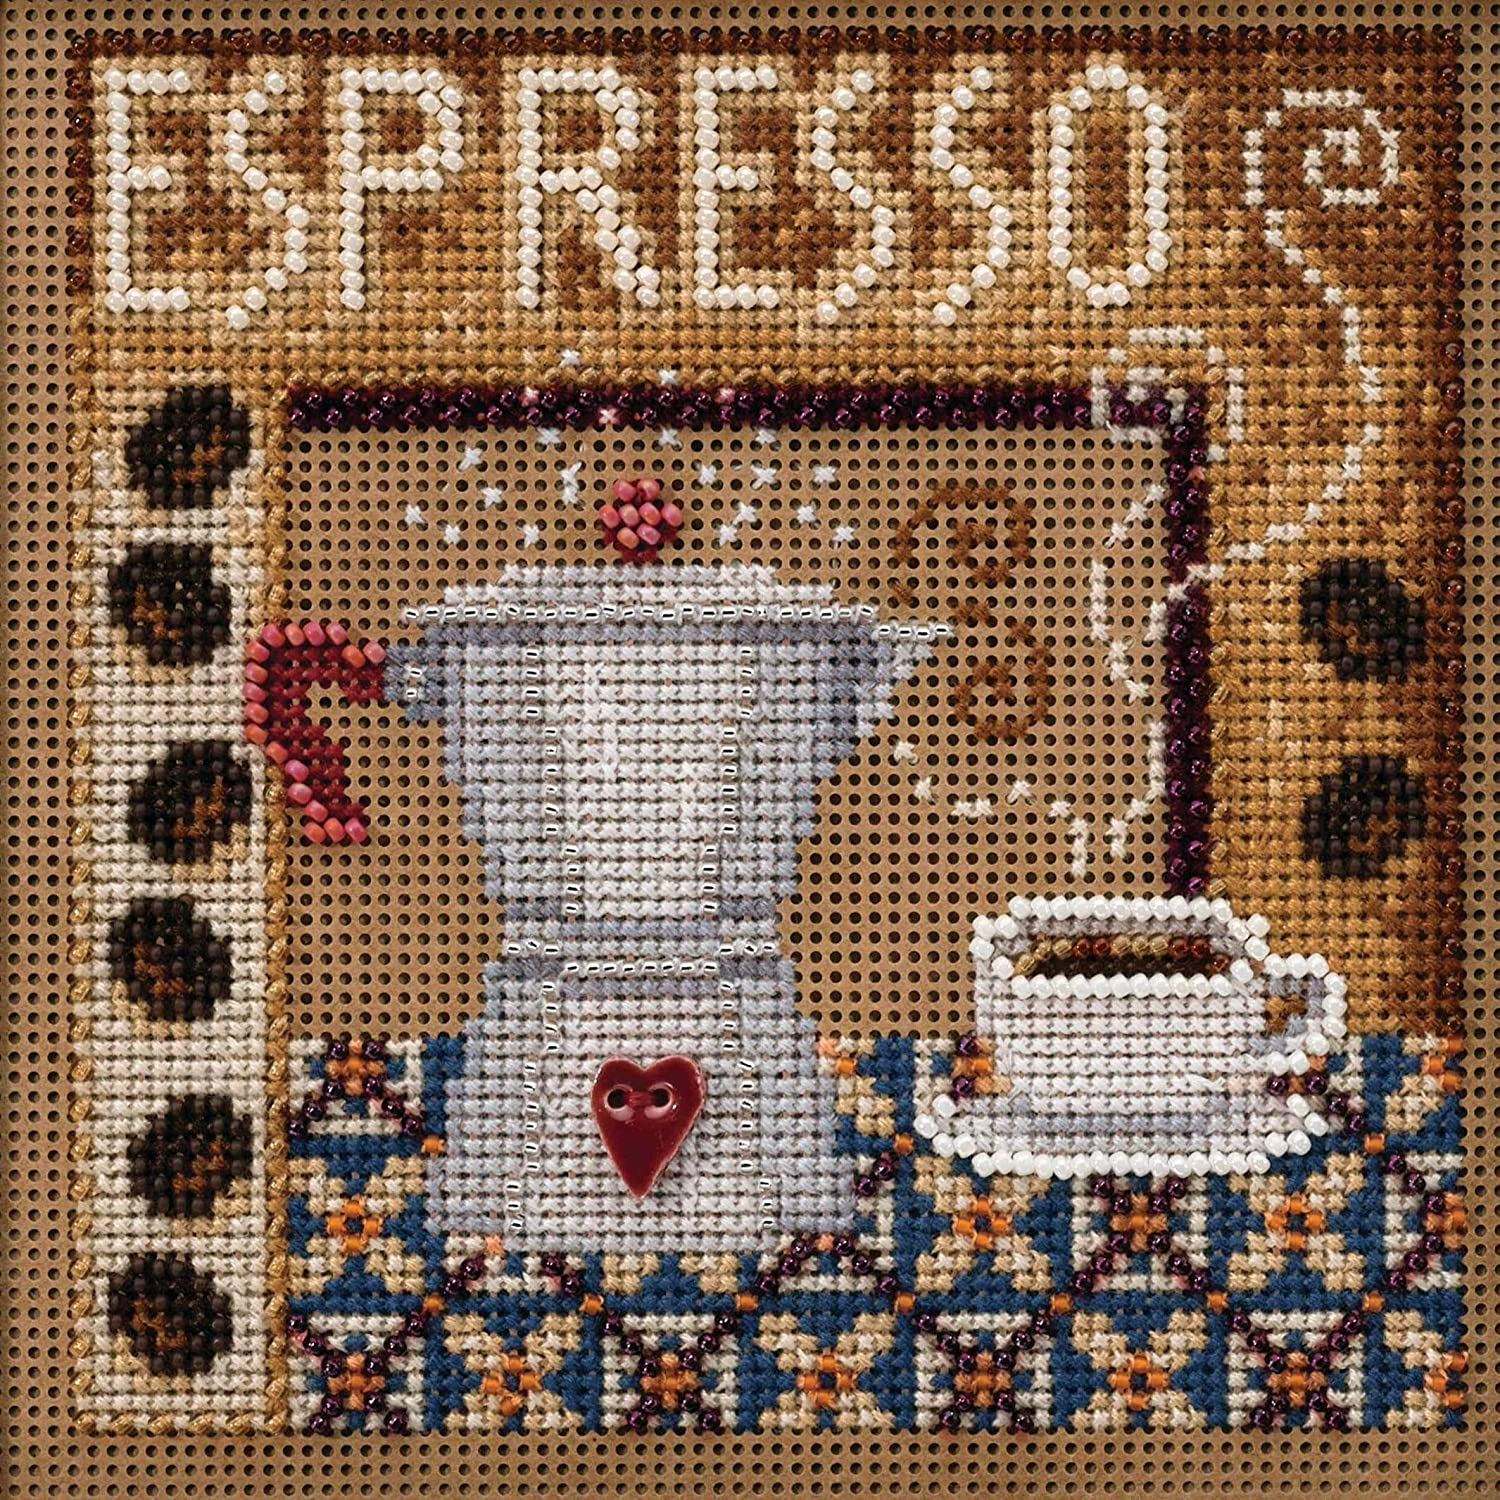 14 Count Mill Hill Buttons /& Beads Counted Cross Stitch Kit 5X5-Espresso